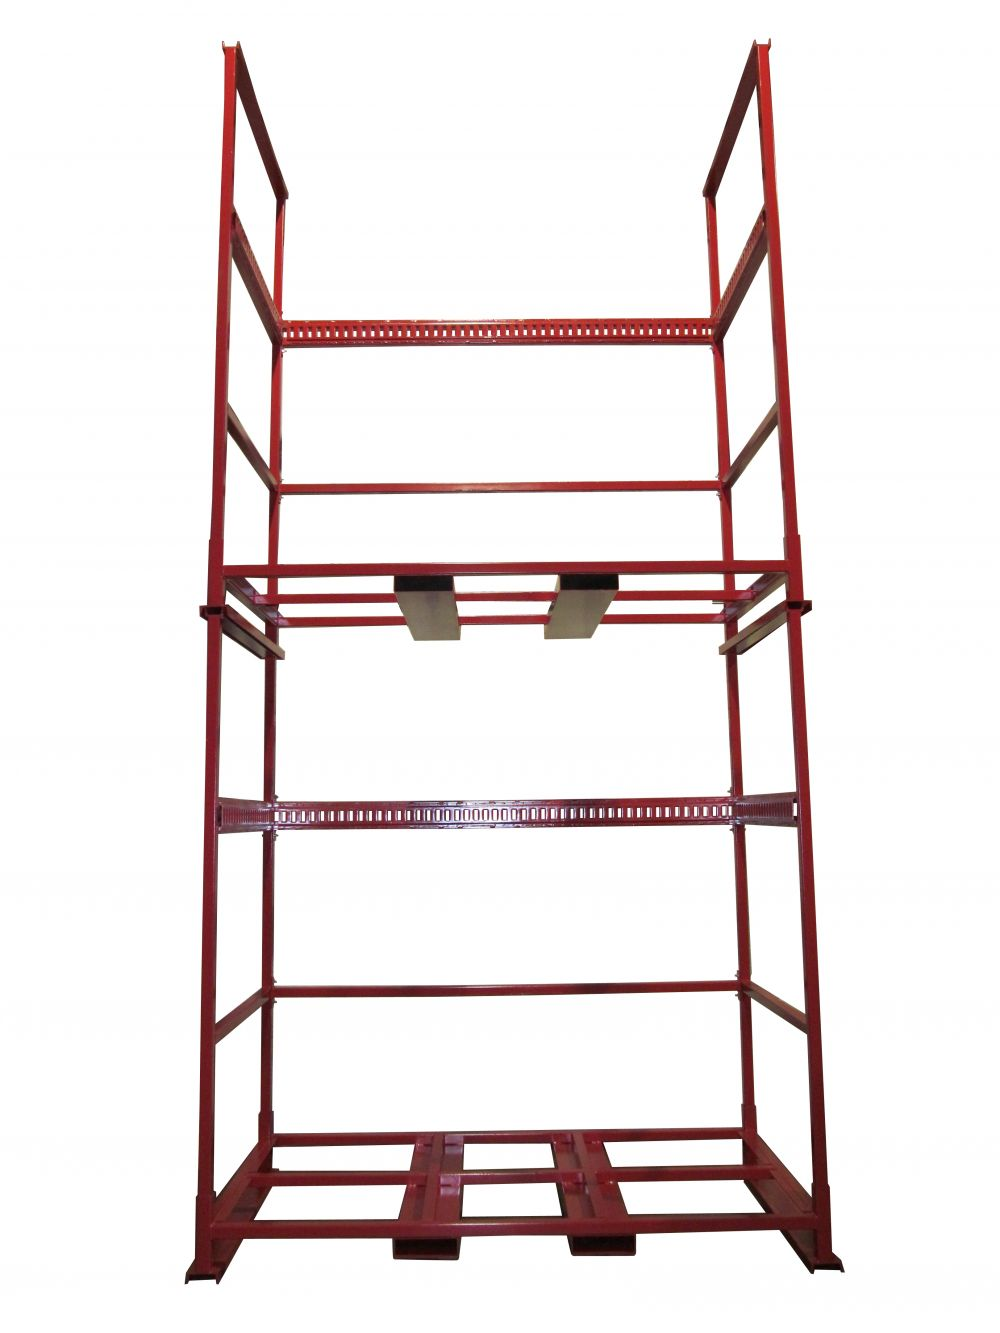 Double Stacked Millwork Racks